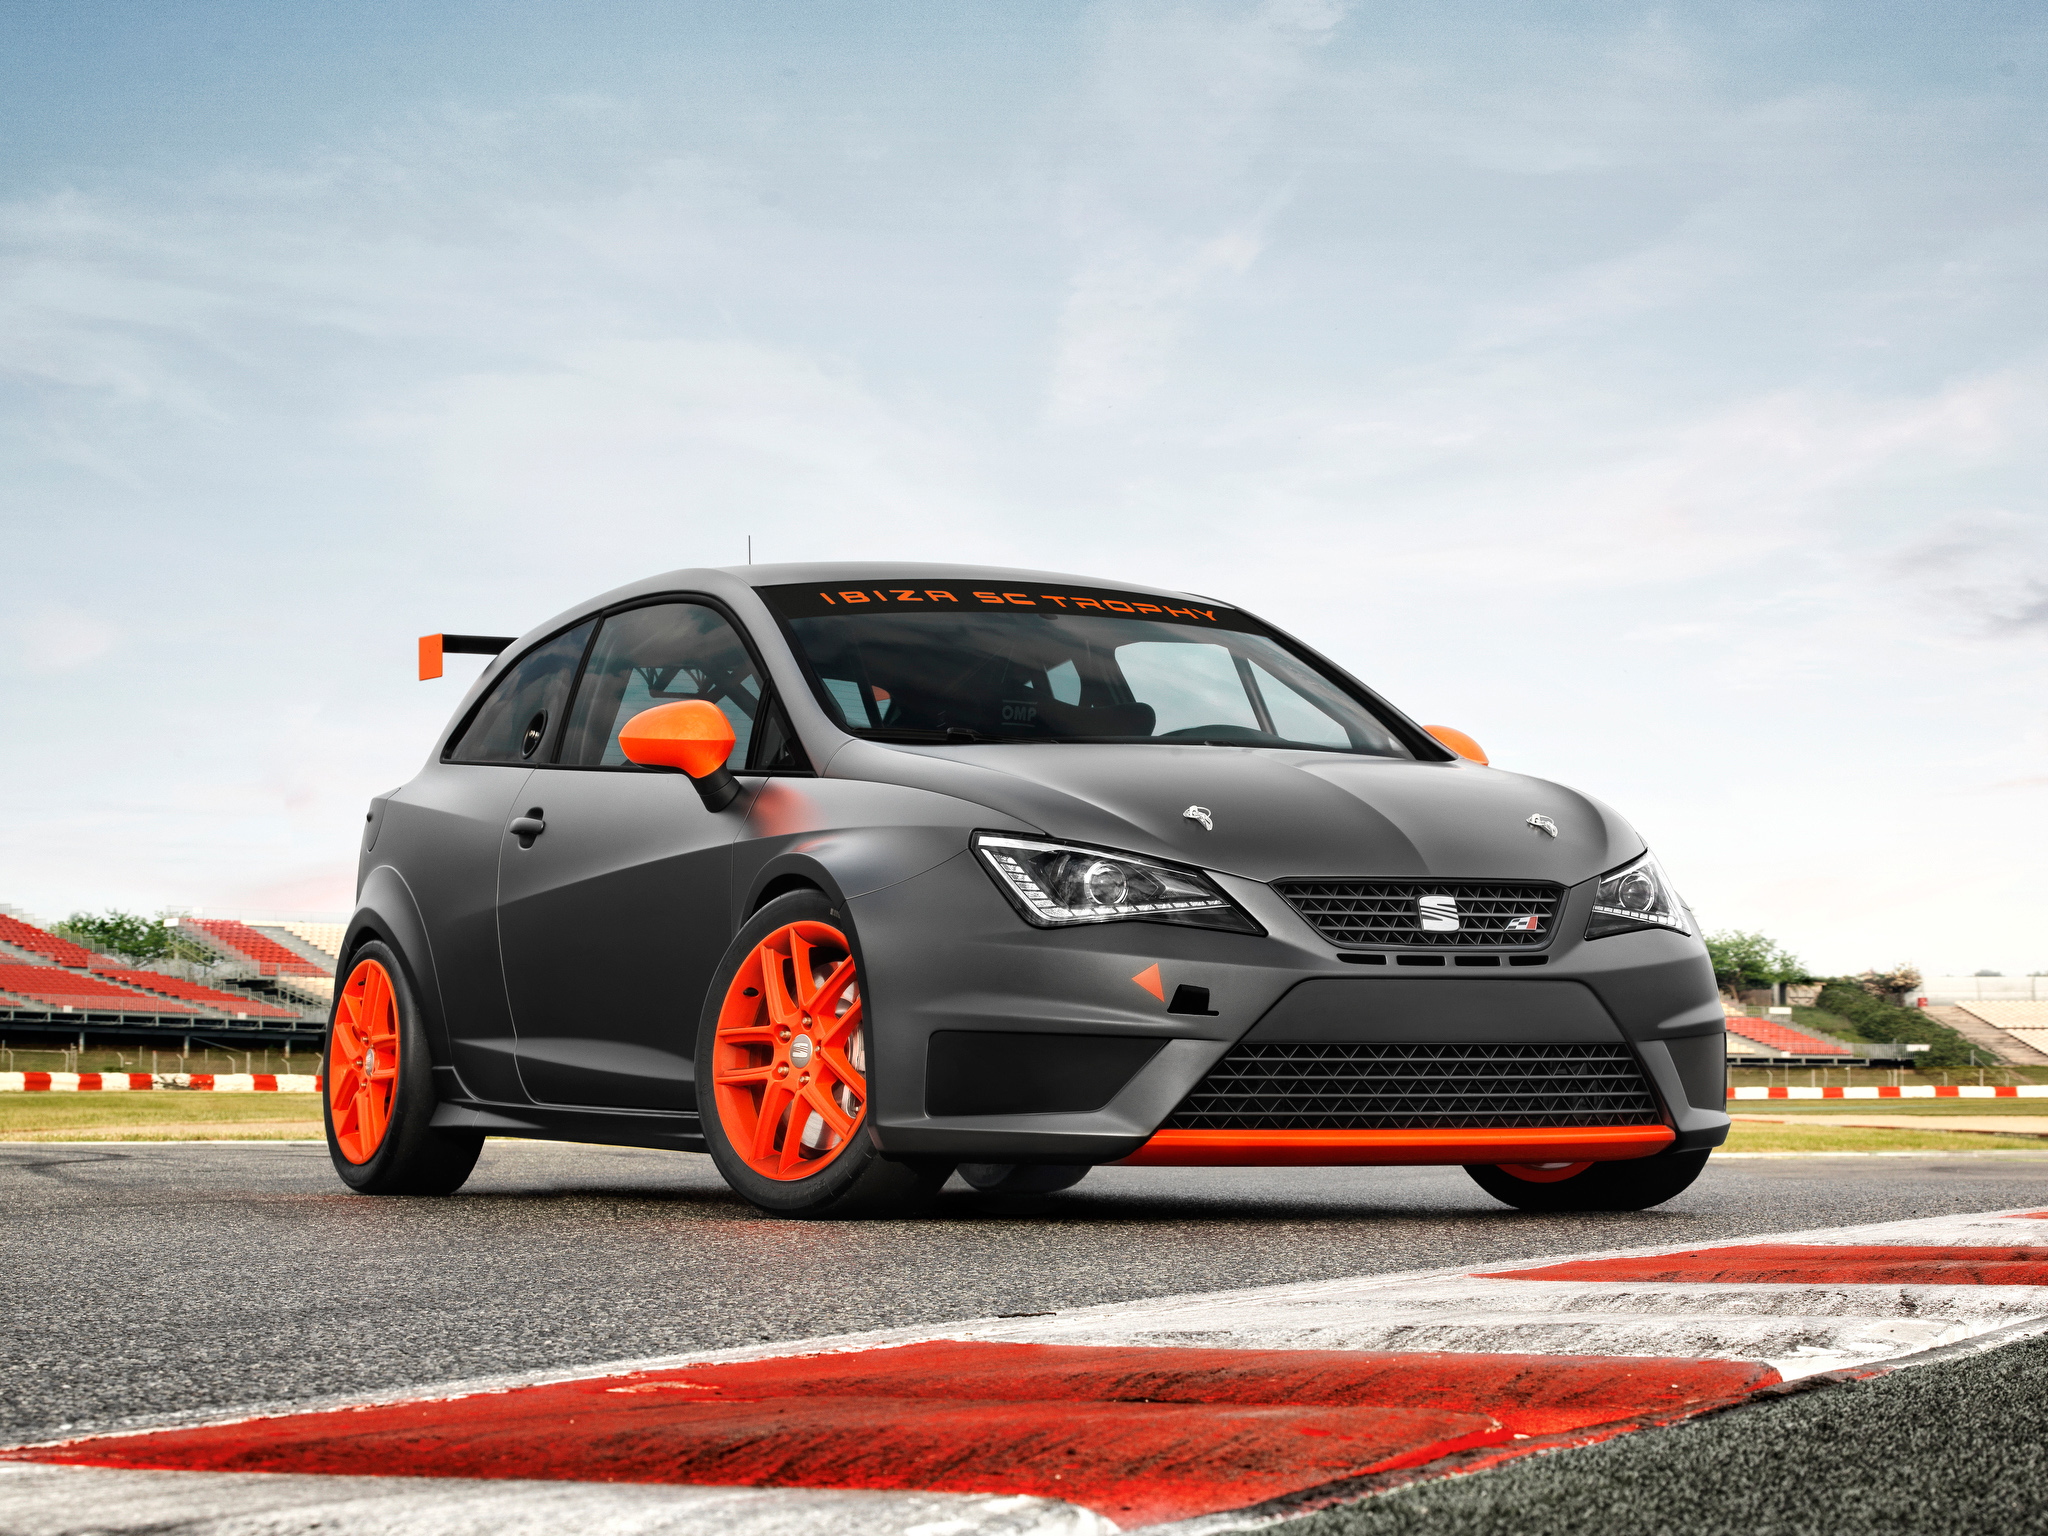 2012 seat ibiza s c trophy tuning race racing f wallpaper 2048x1536 95287 wallpaperup. Black Bedroom Furniture Sets. Home Design Ideas